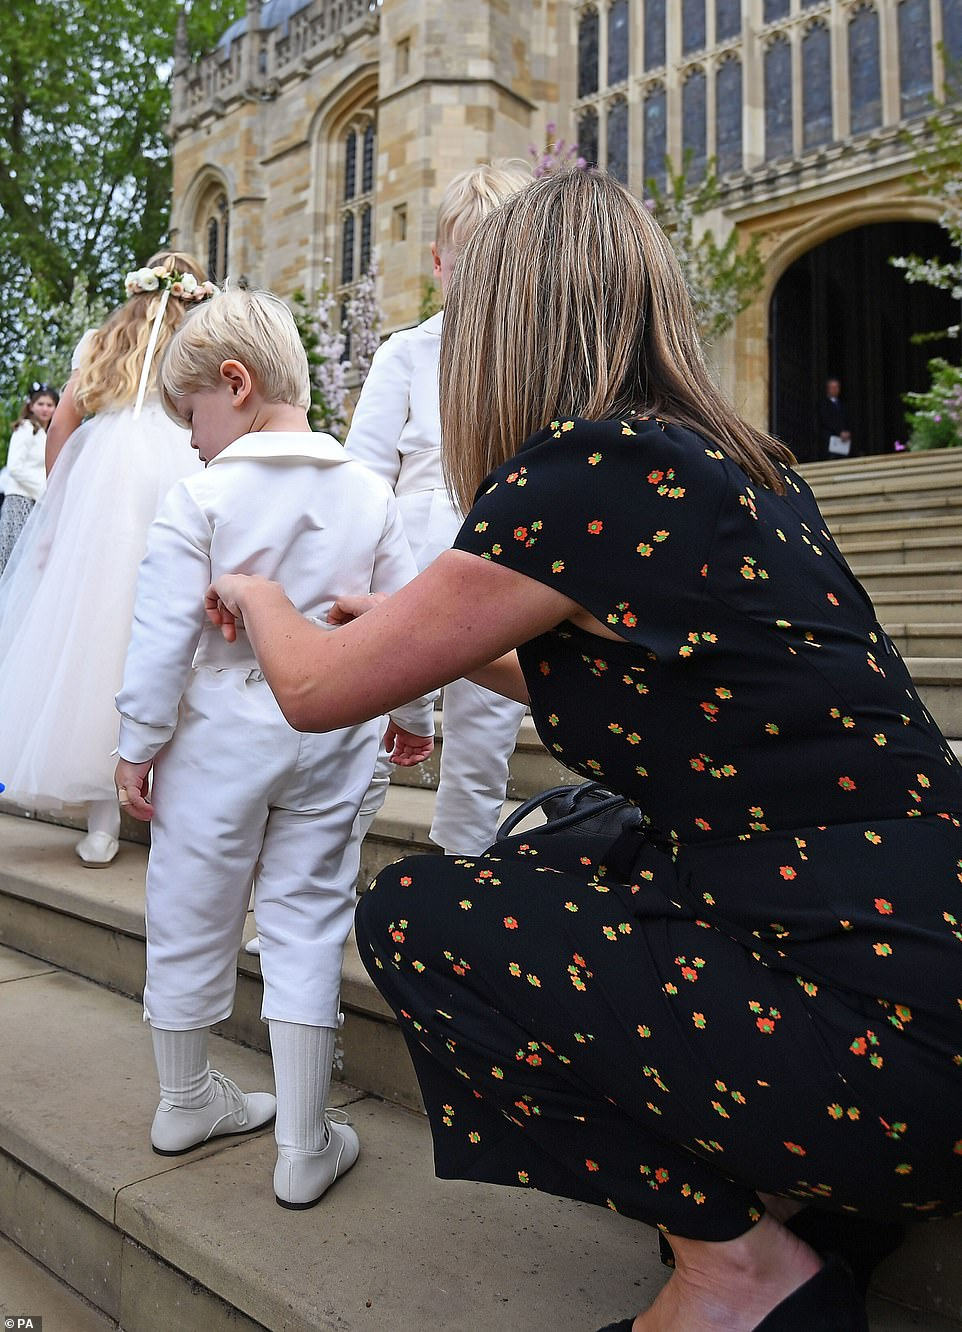 The pageboys donned all white outfits with matching shoes for the event at St George's Chapel in Windsor